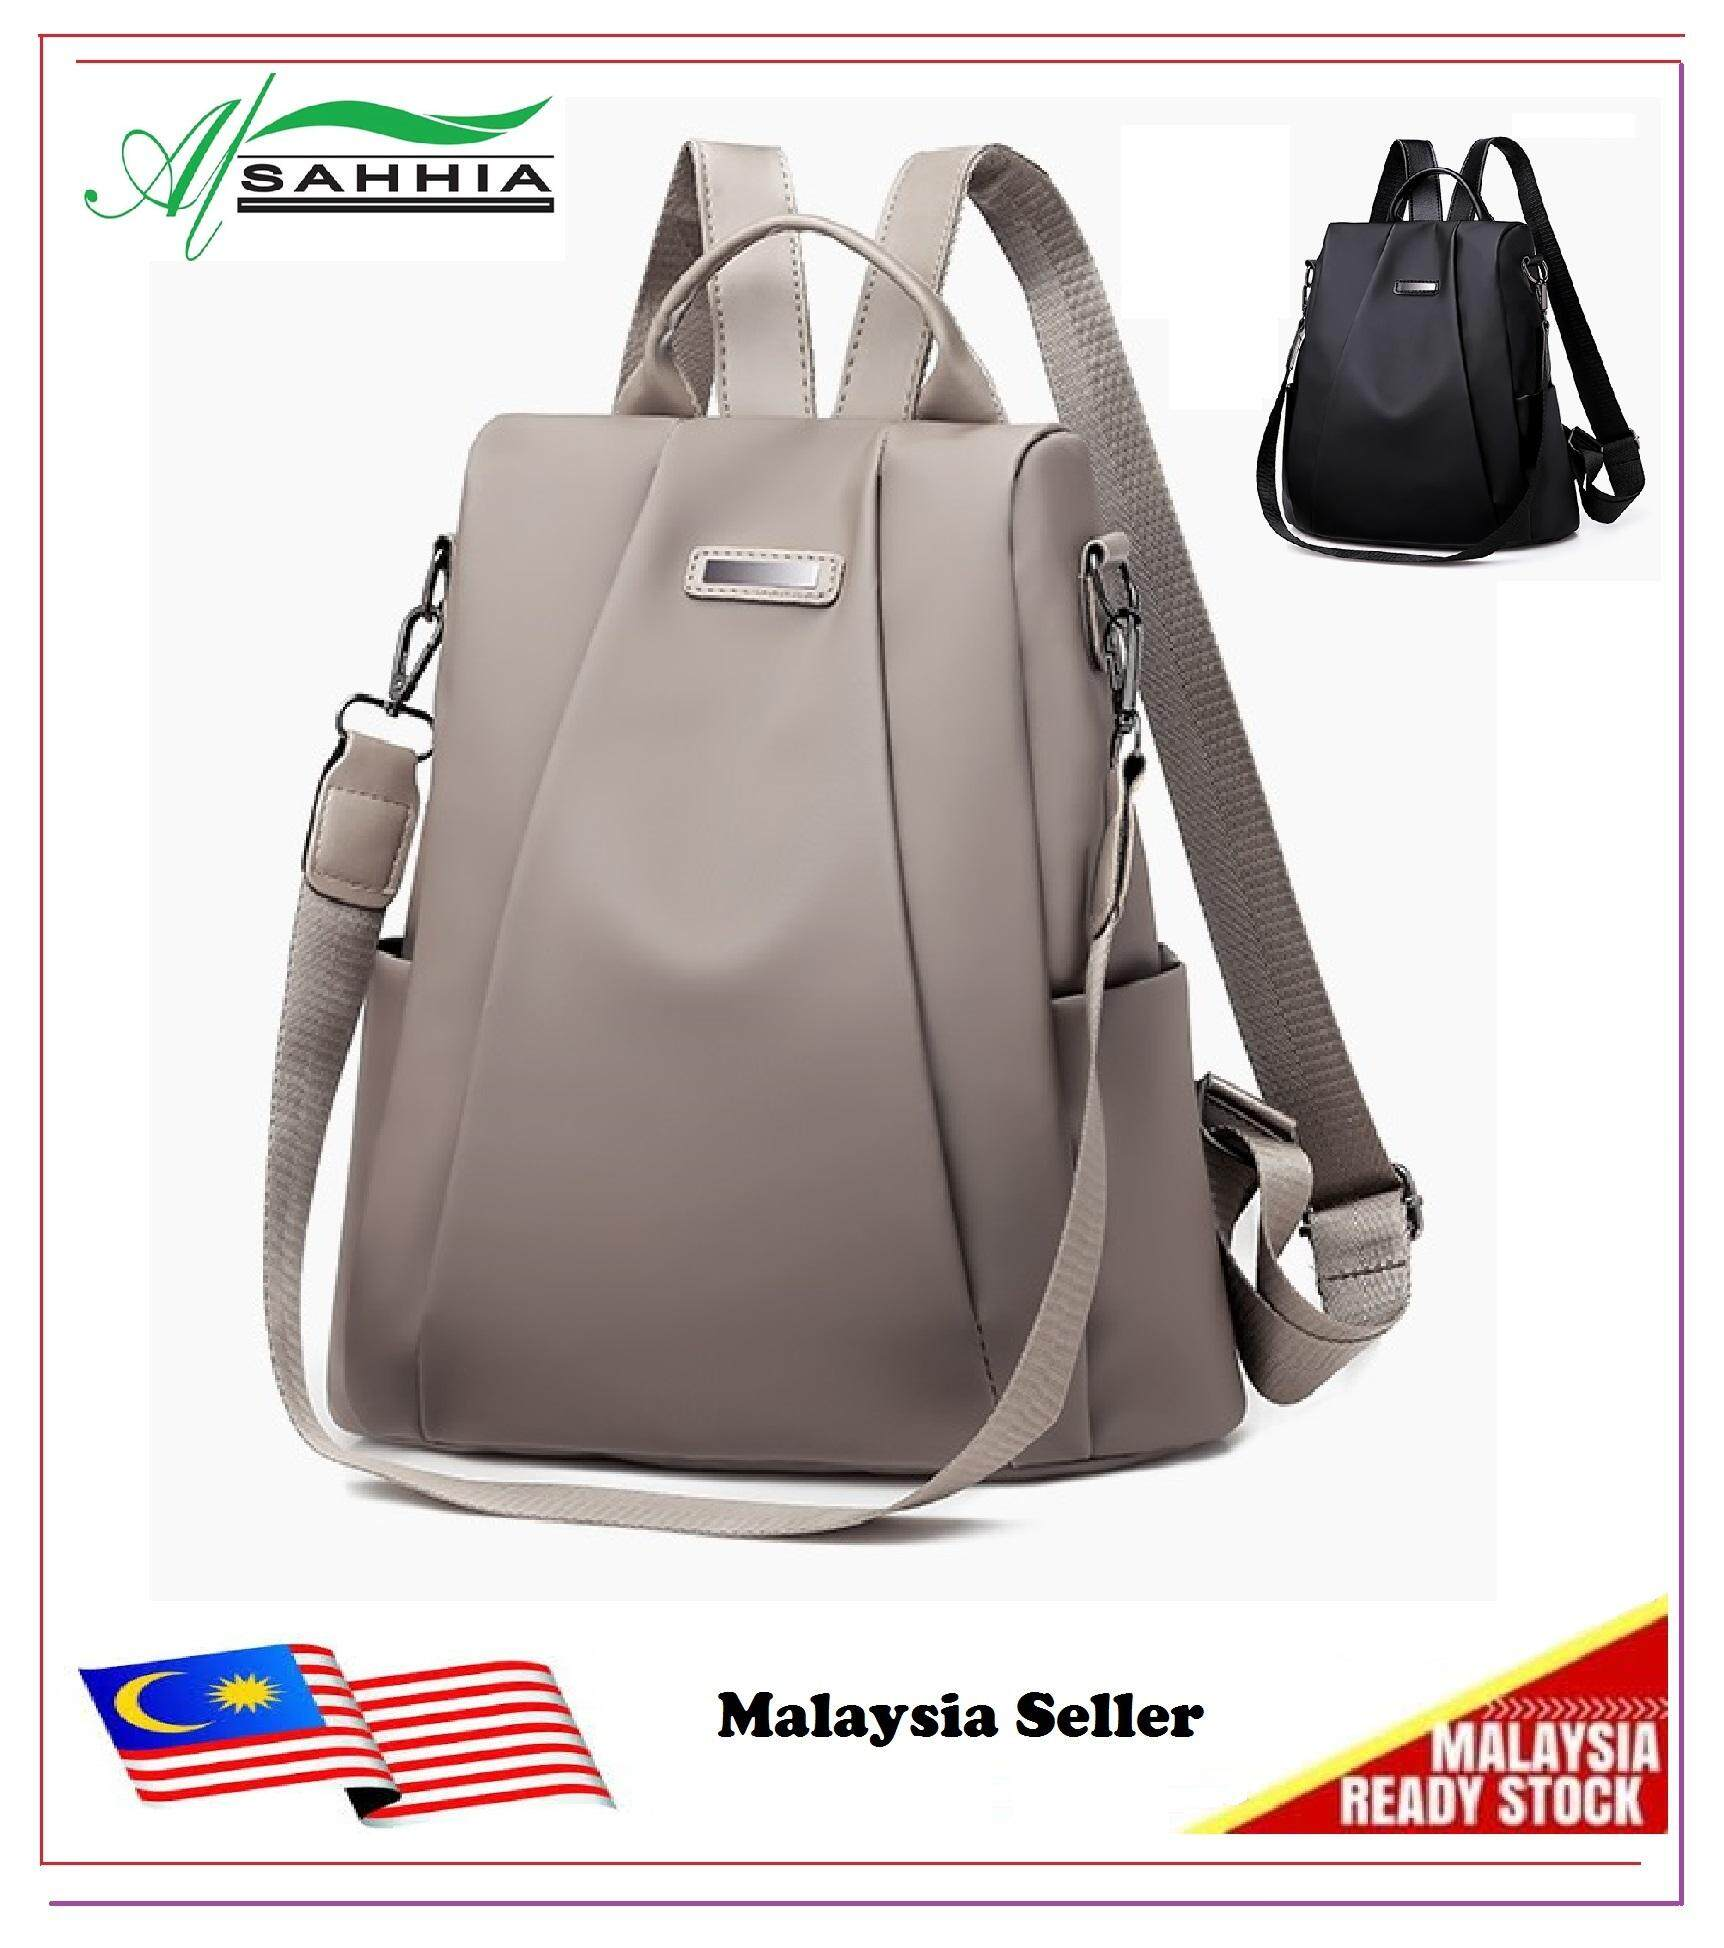 491d66e16335 Al Sahhia Ready Stock Plain Oxford Cloth Anti Theft Backpack Casual Lady Beg